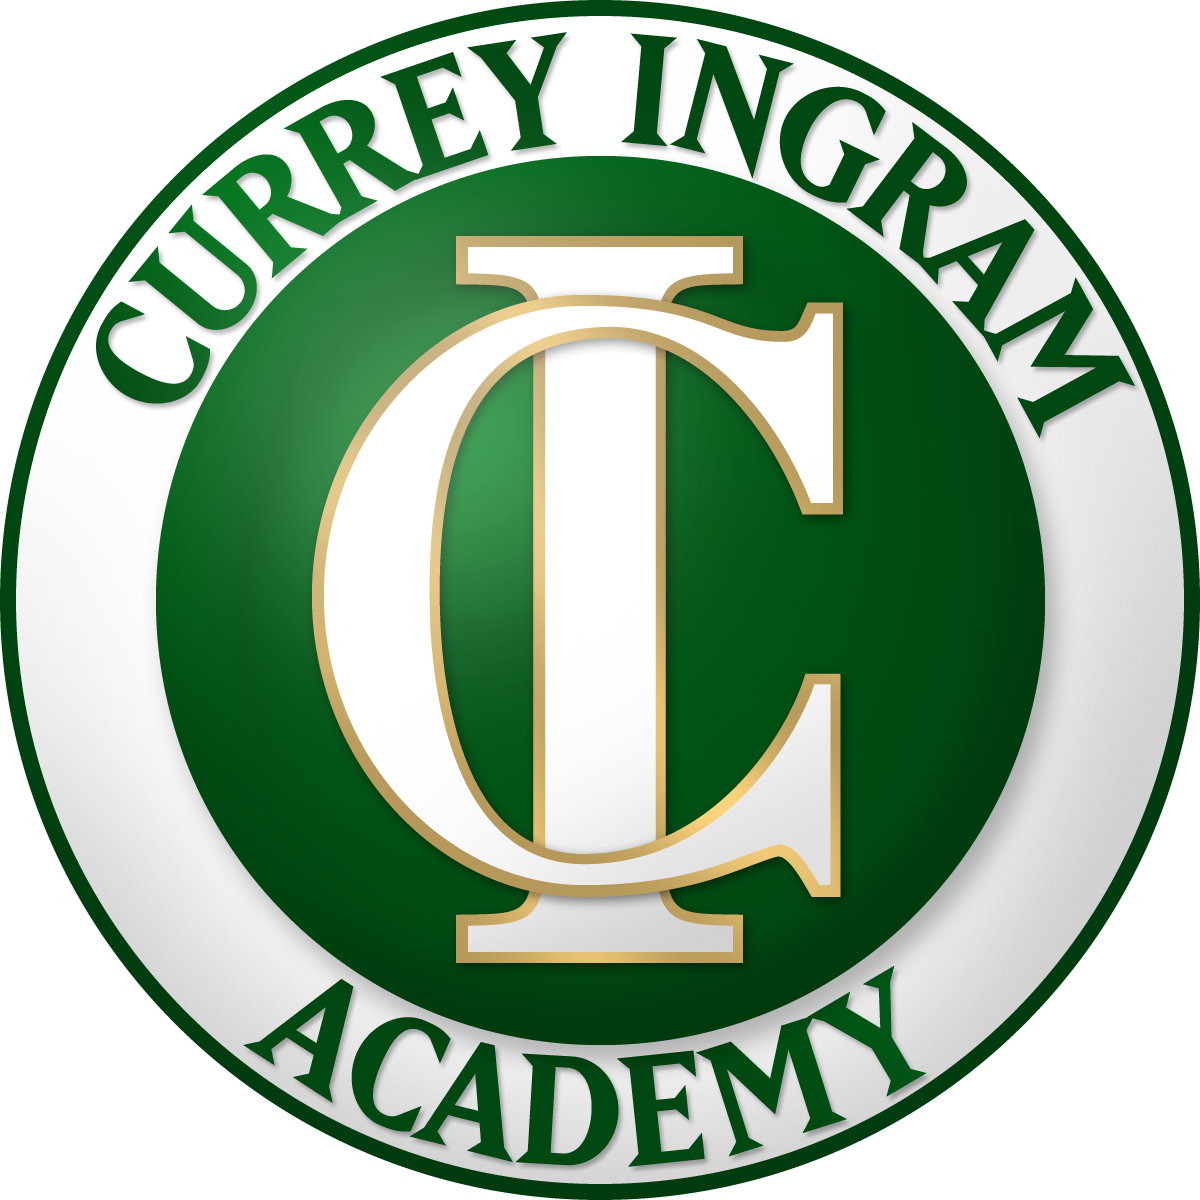 Currey Ingram Academy, Brentwood, TN